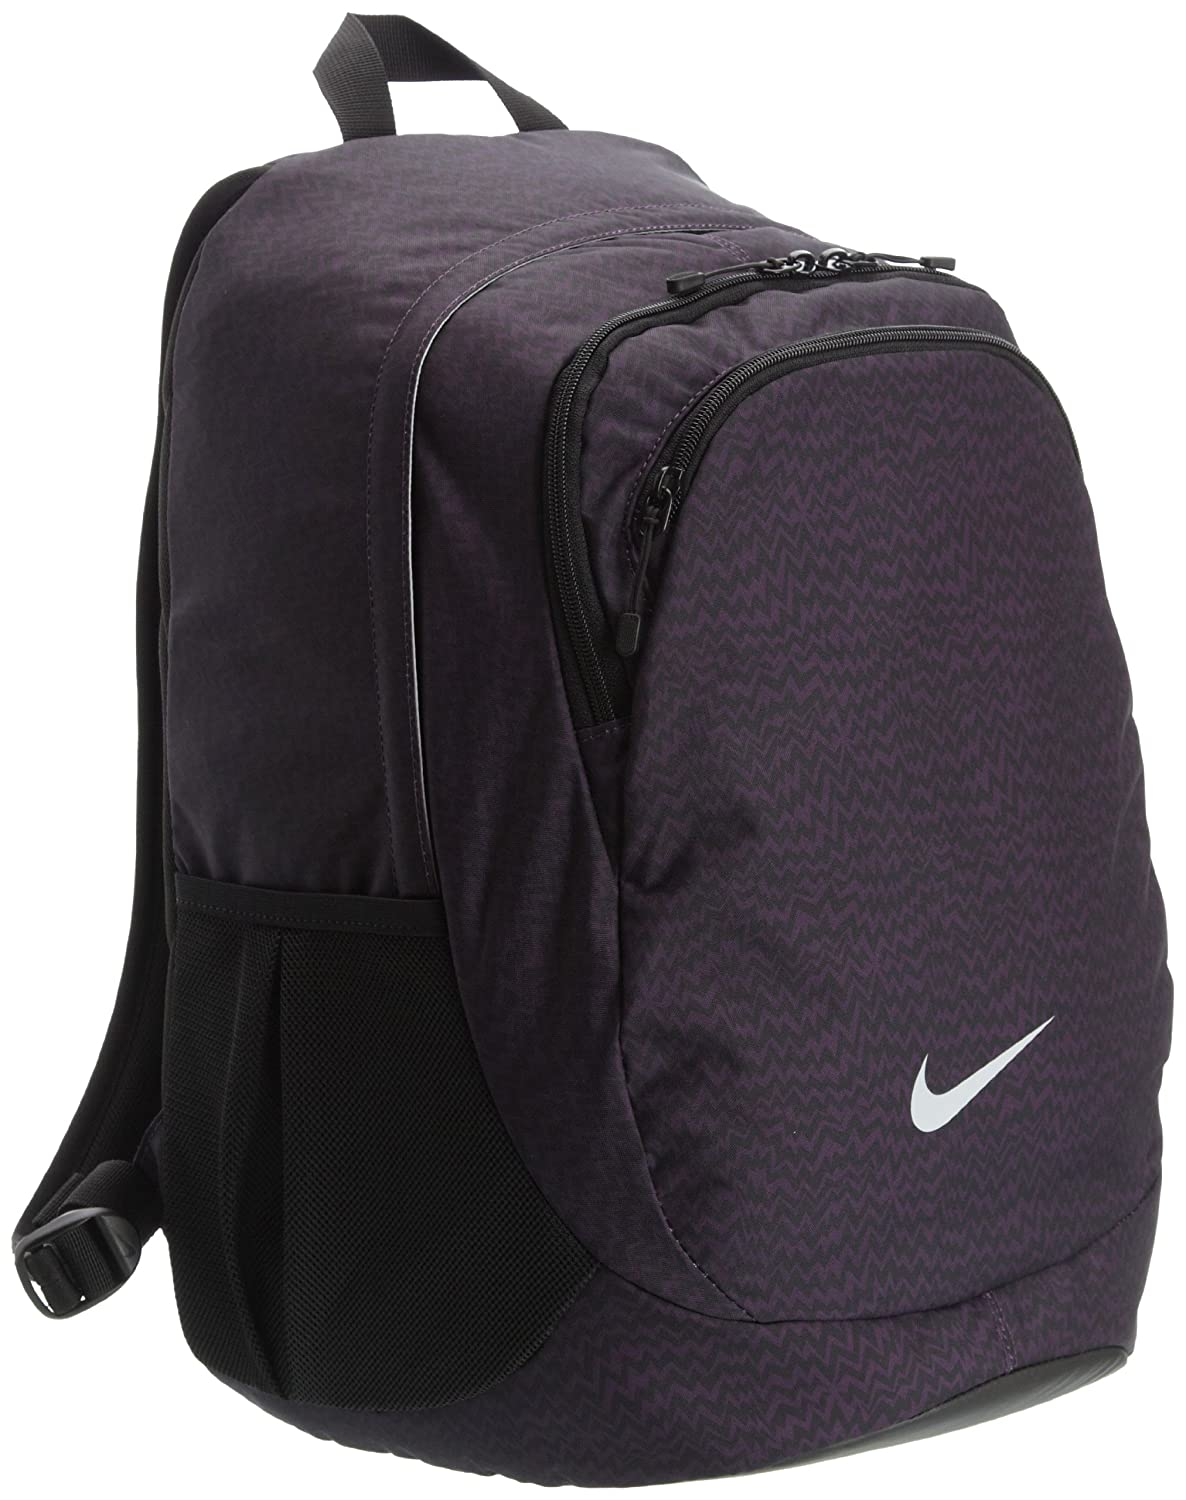 Nike womens laptop sleeve backpack book bag sports outdoors jpg 1186x1500 Nike  laptop cover f979391b0e8b9